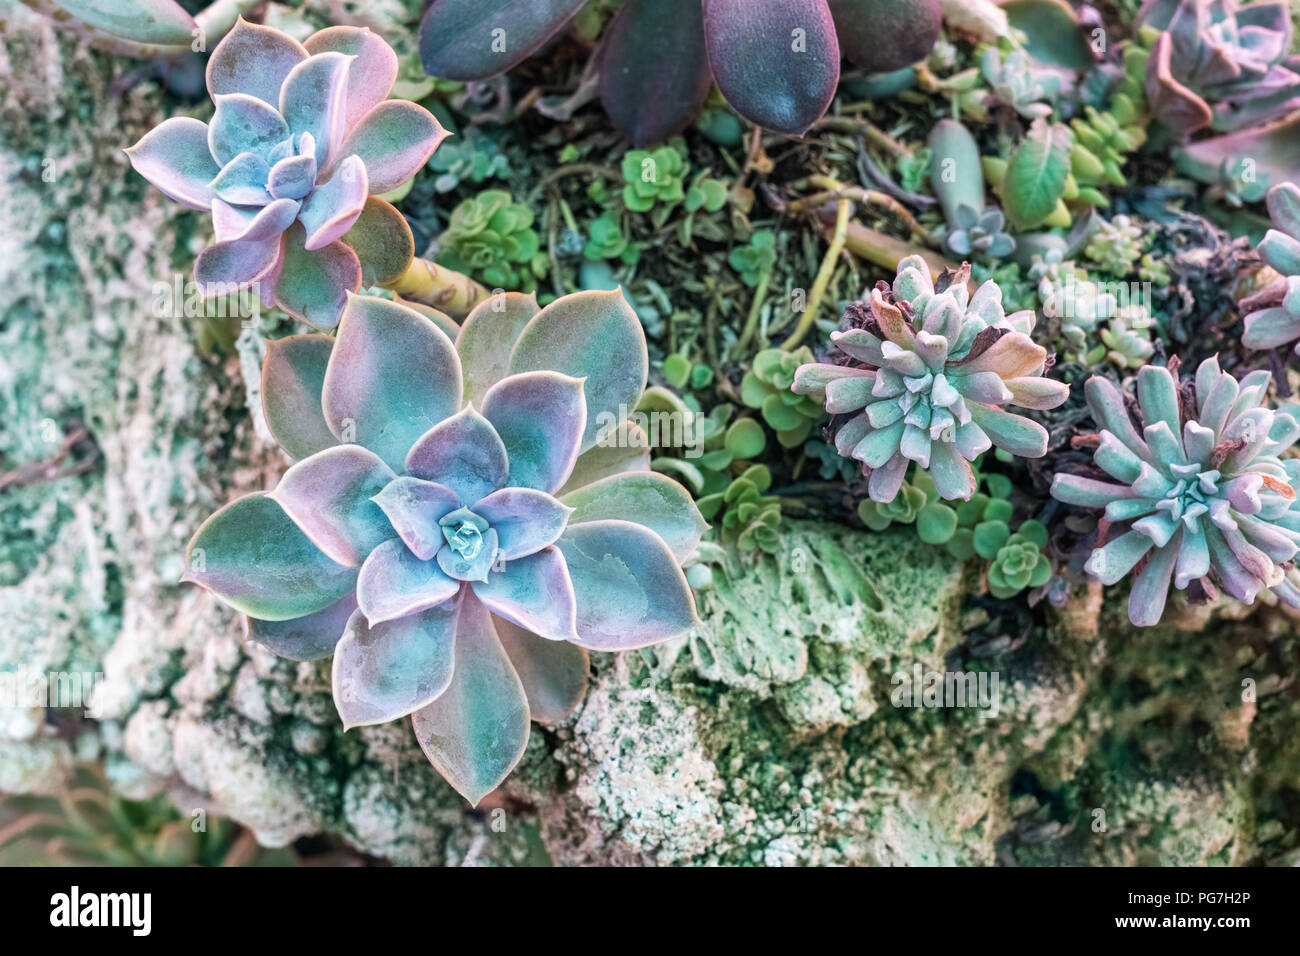 Close Up Top View Of Variety Succulent Plants Arrangement With Decorative Ornaments On A Grunge Rock Stone Beautiful Nature Wallpaper Background Stock Photo Alamy